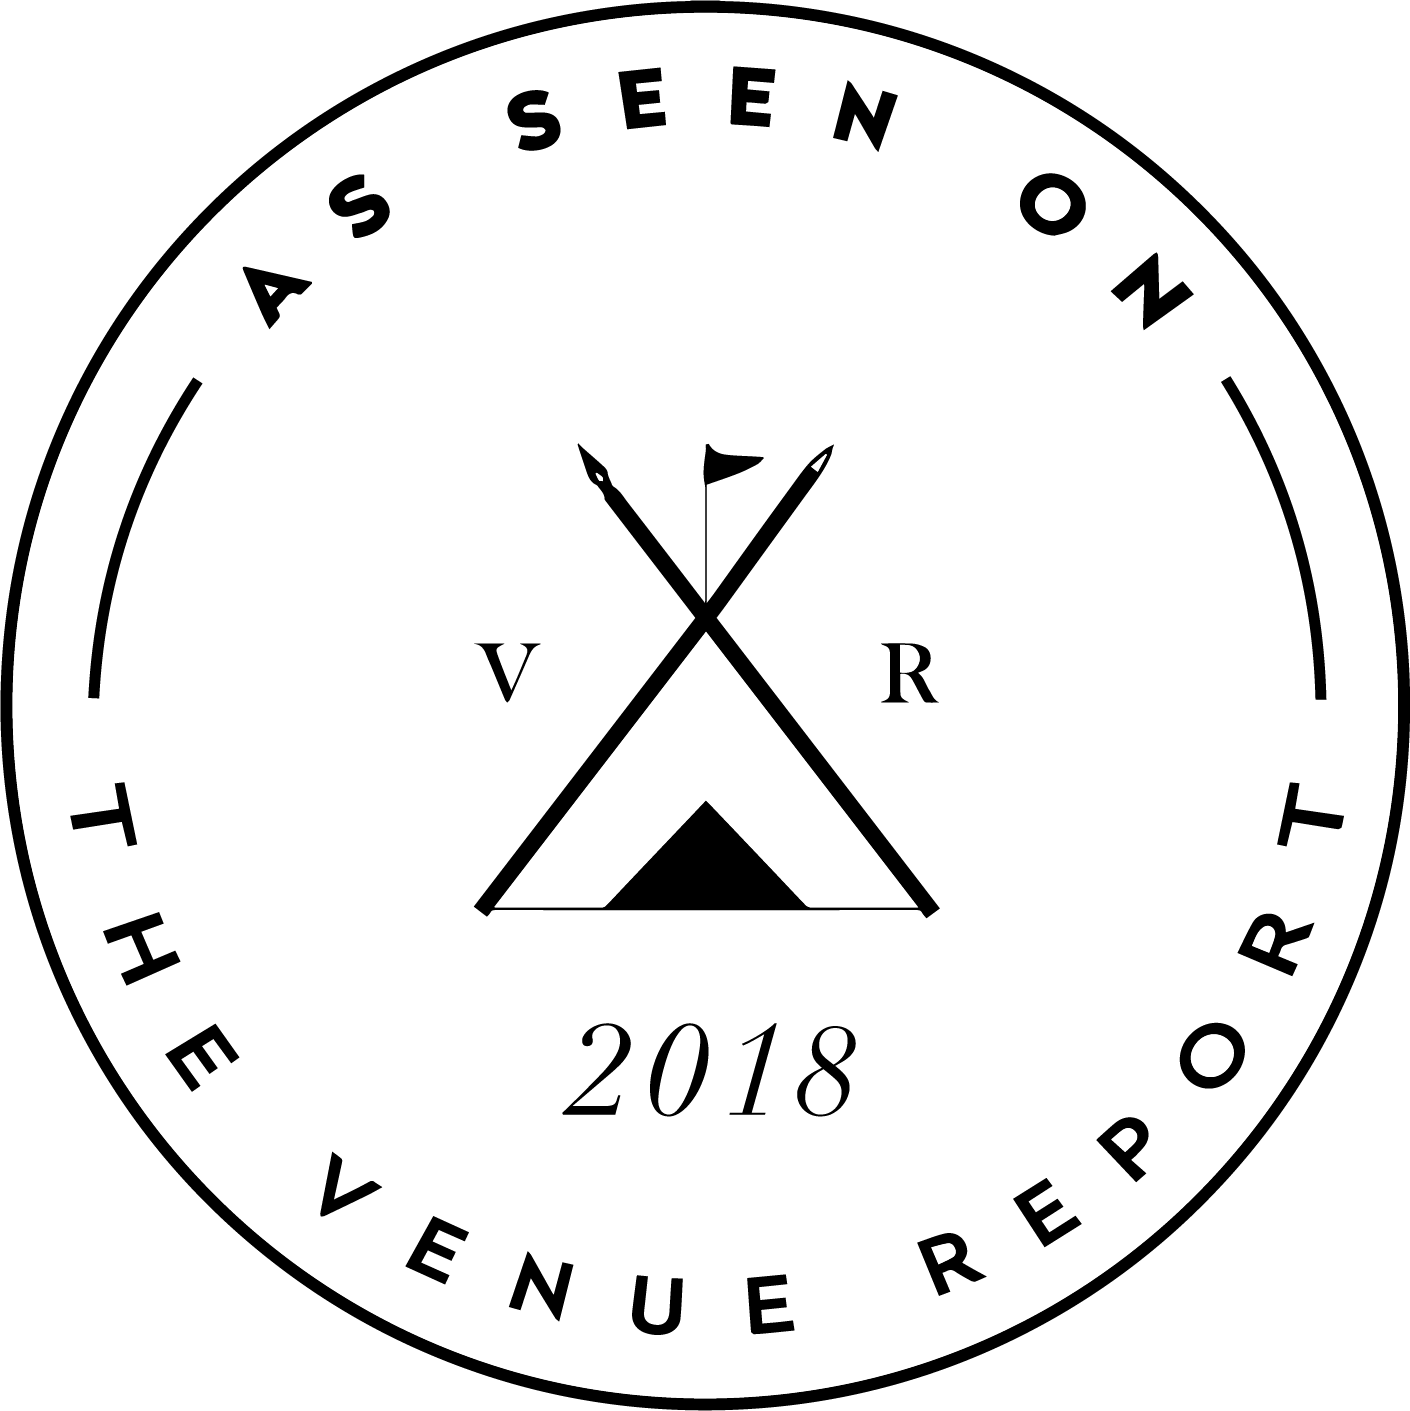 TheVenueReport_AsSeenOnBadge_2018.png